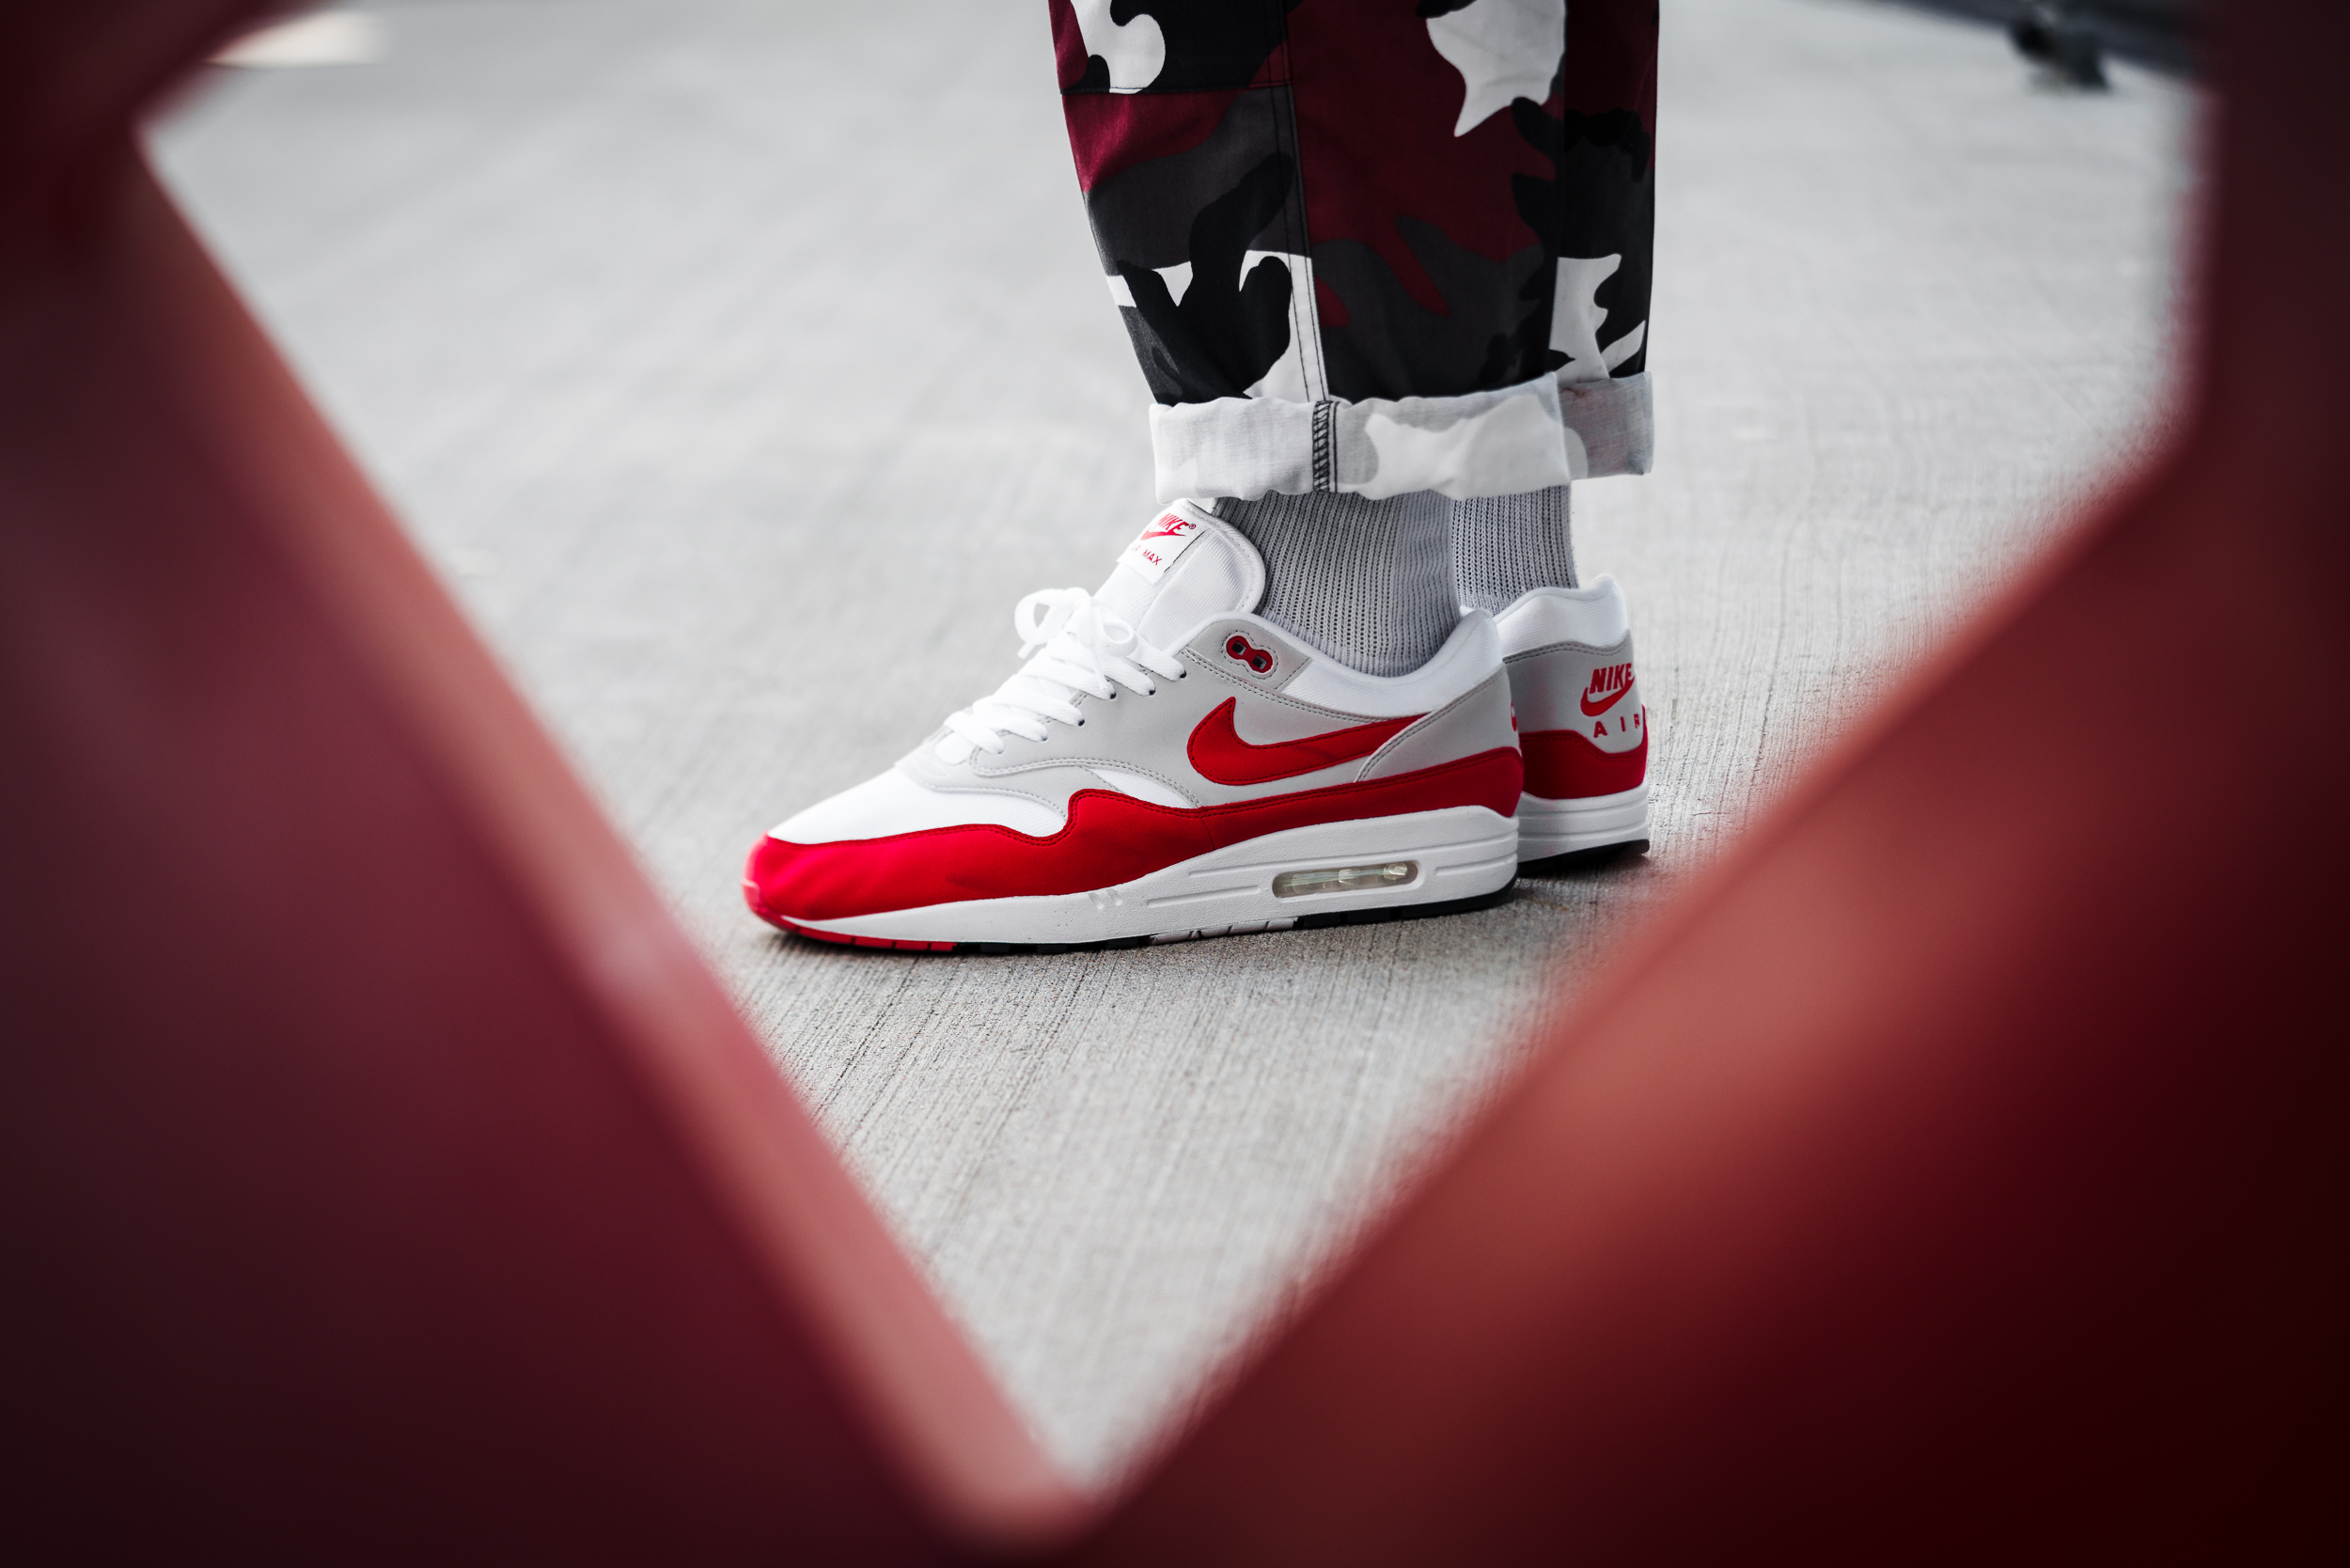 GIFTED PAIR BY NIKE